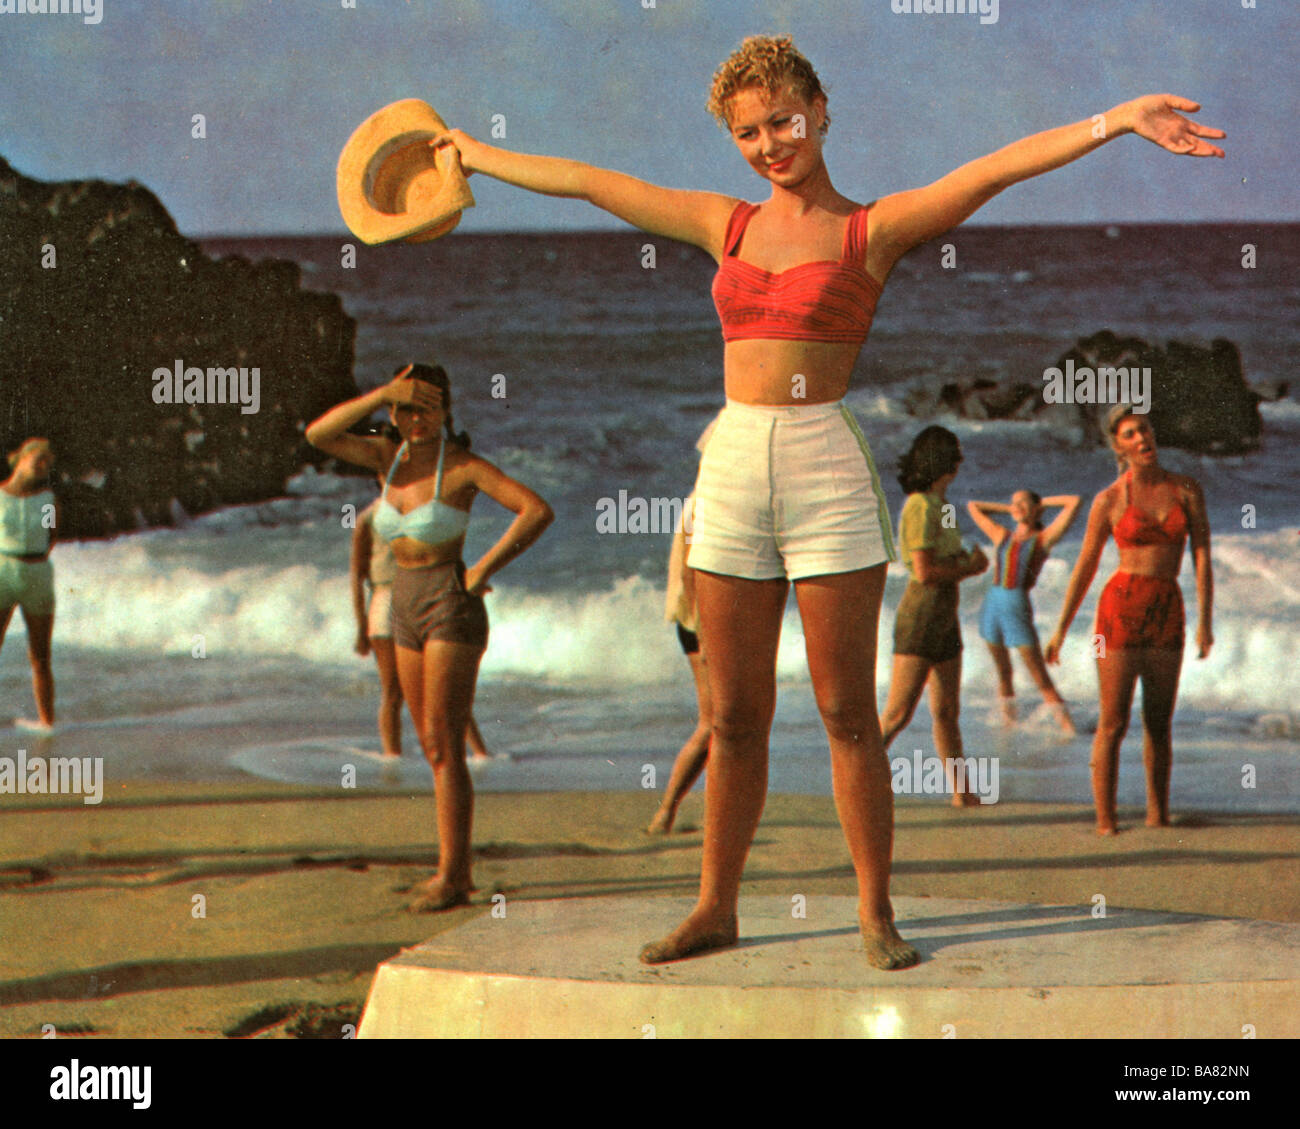 SOUTH PACIFIC 1958 Magna film with Mitzi Gaynor - Stock Image